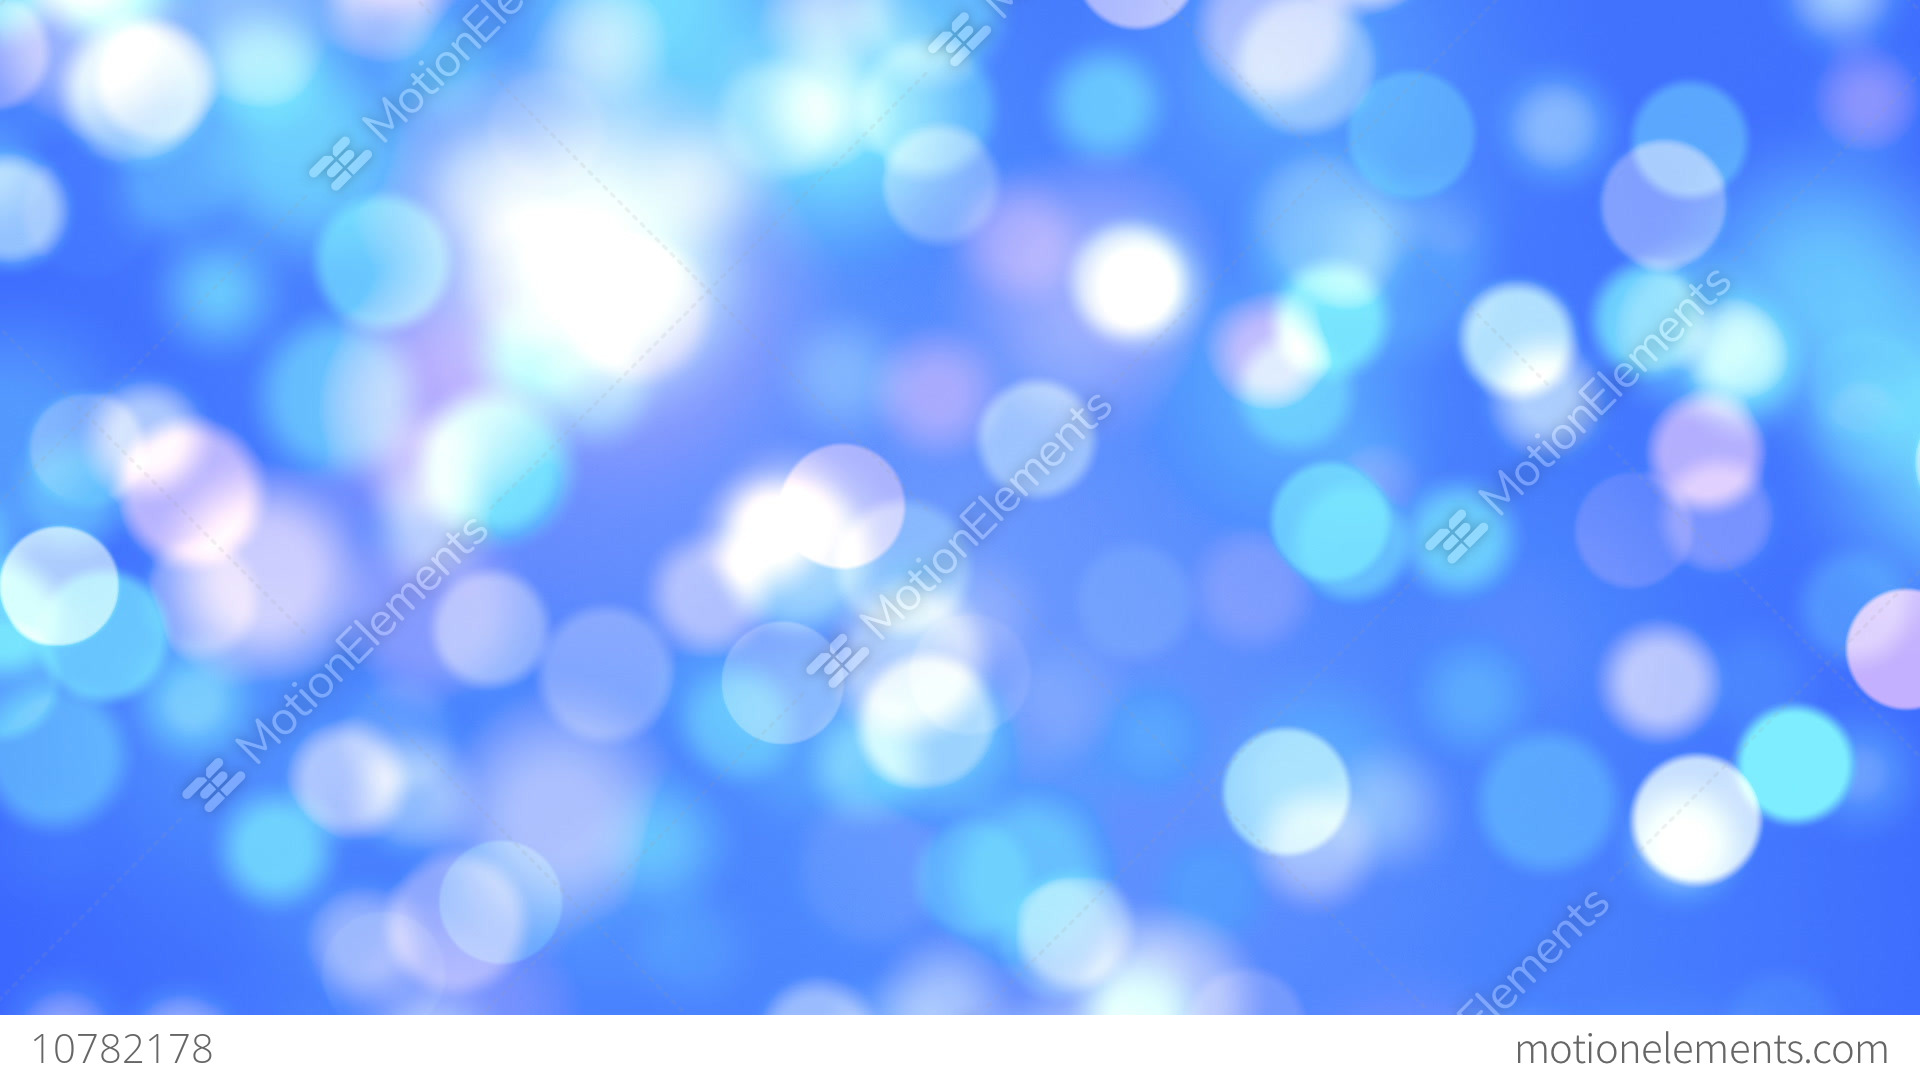 Free Cute Food Wallpaper Blue Abstract Lights Bokeh Background Loop Stock Animation